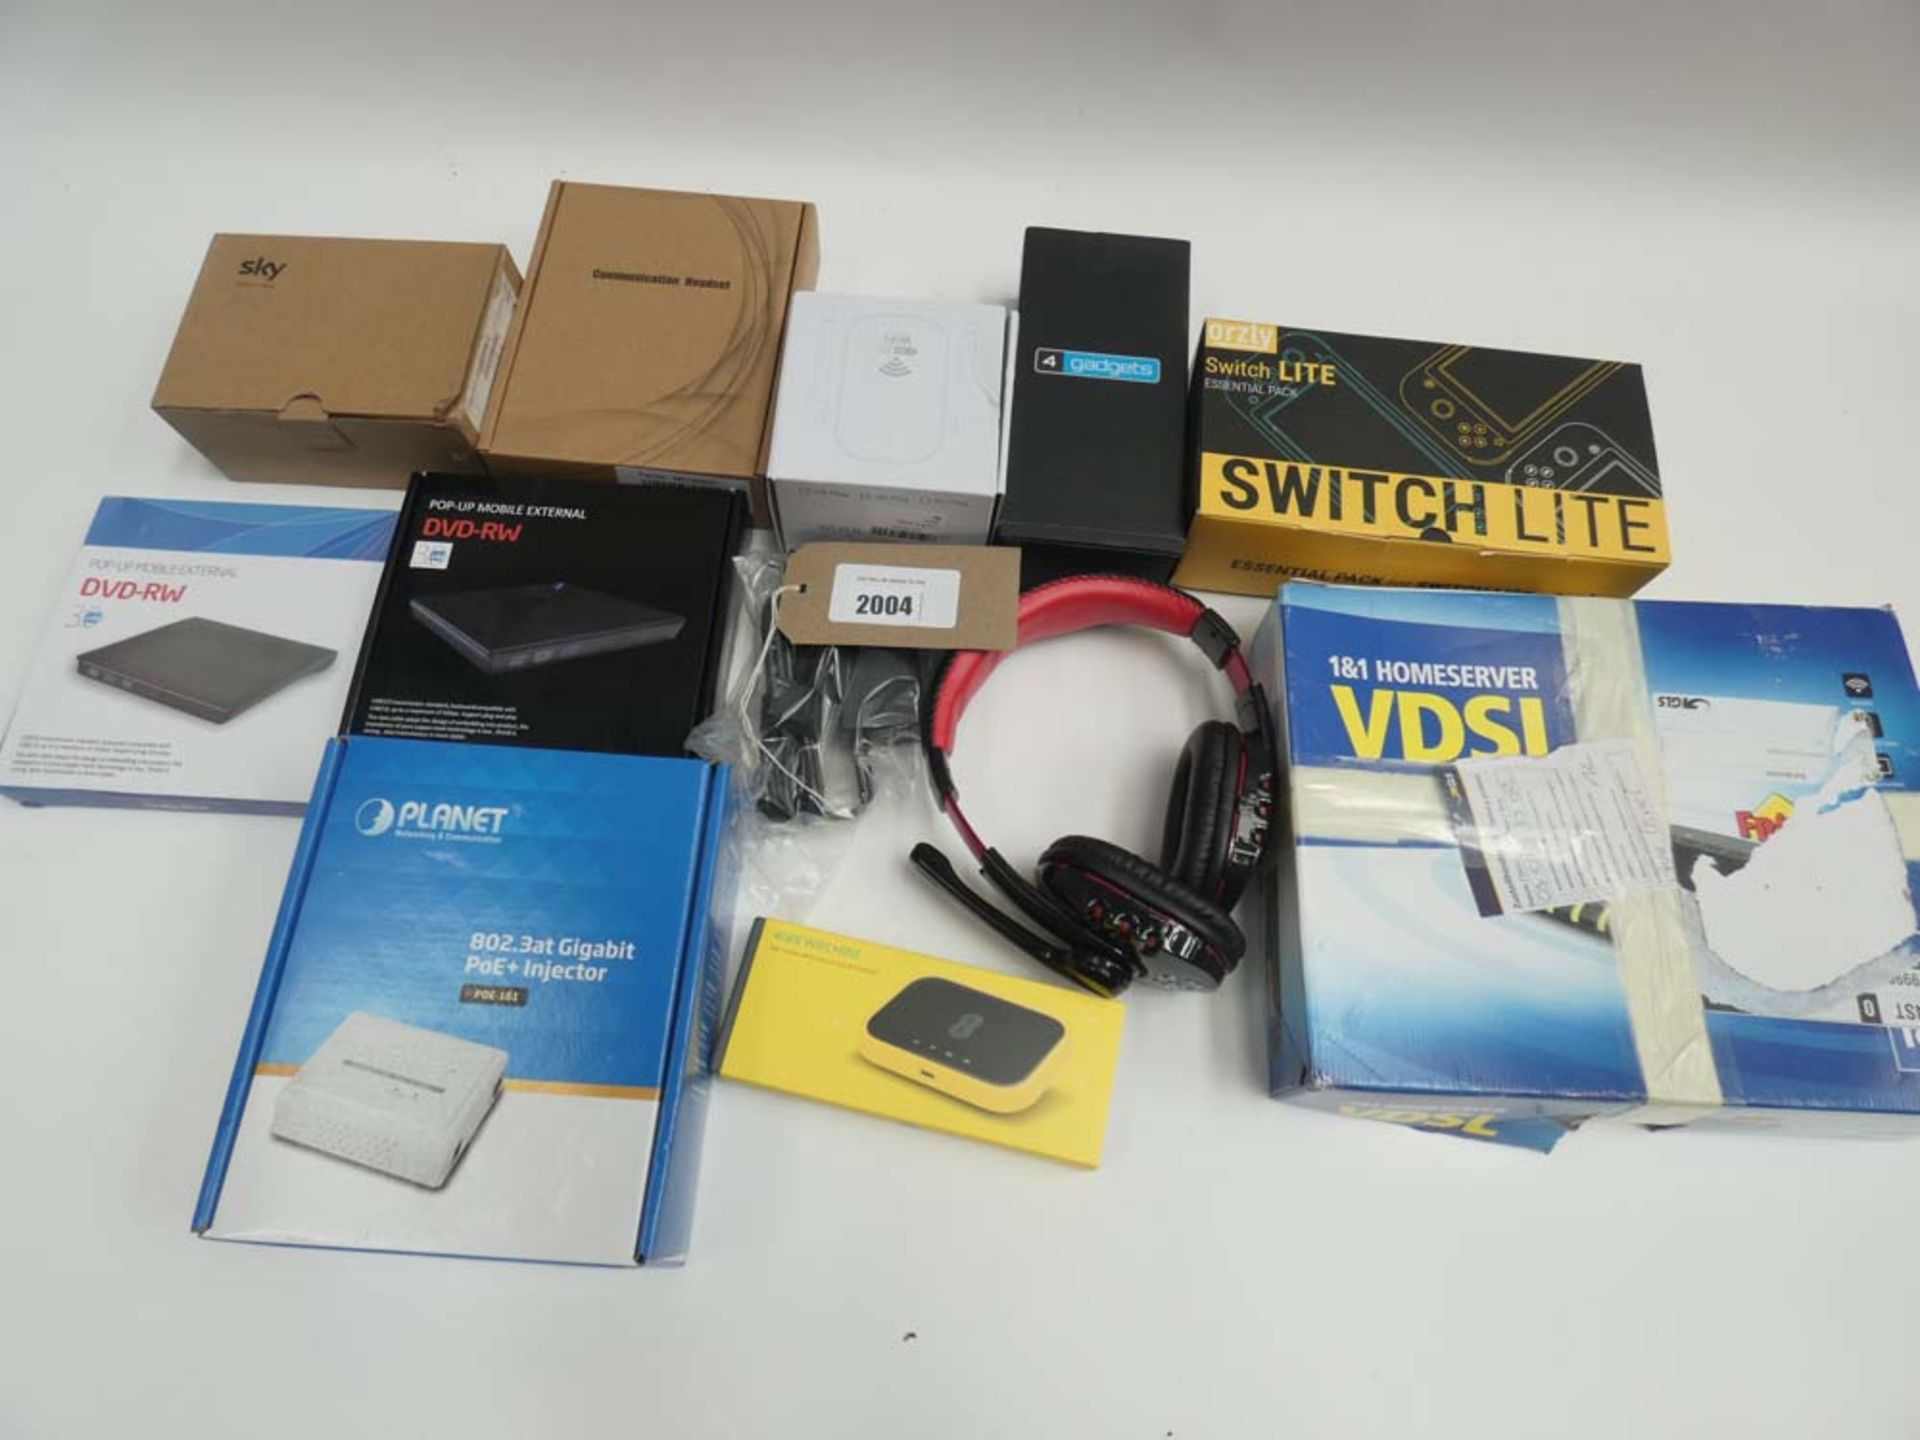 Lot 2004 - Bag containing external DVD drives, headsets, Switch Lite case, WiFi accessories etc